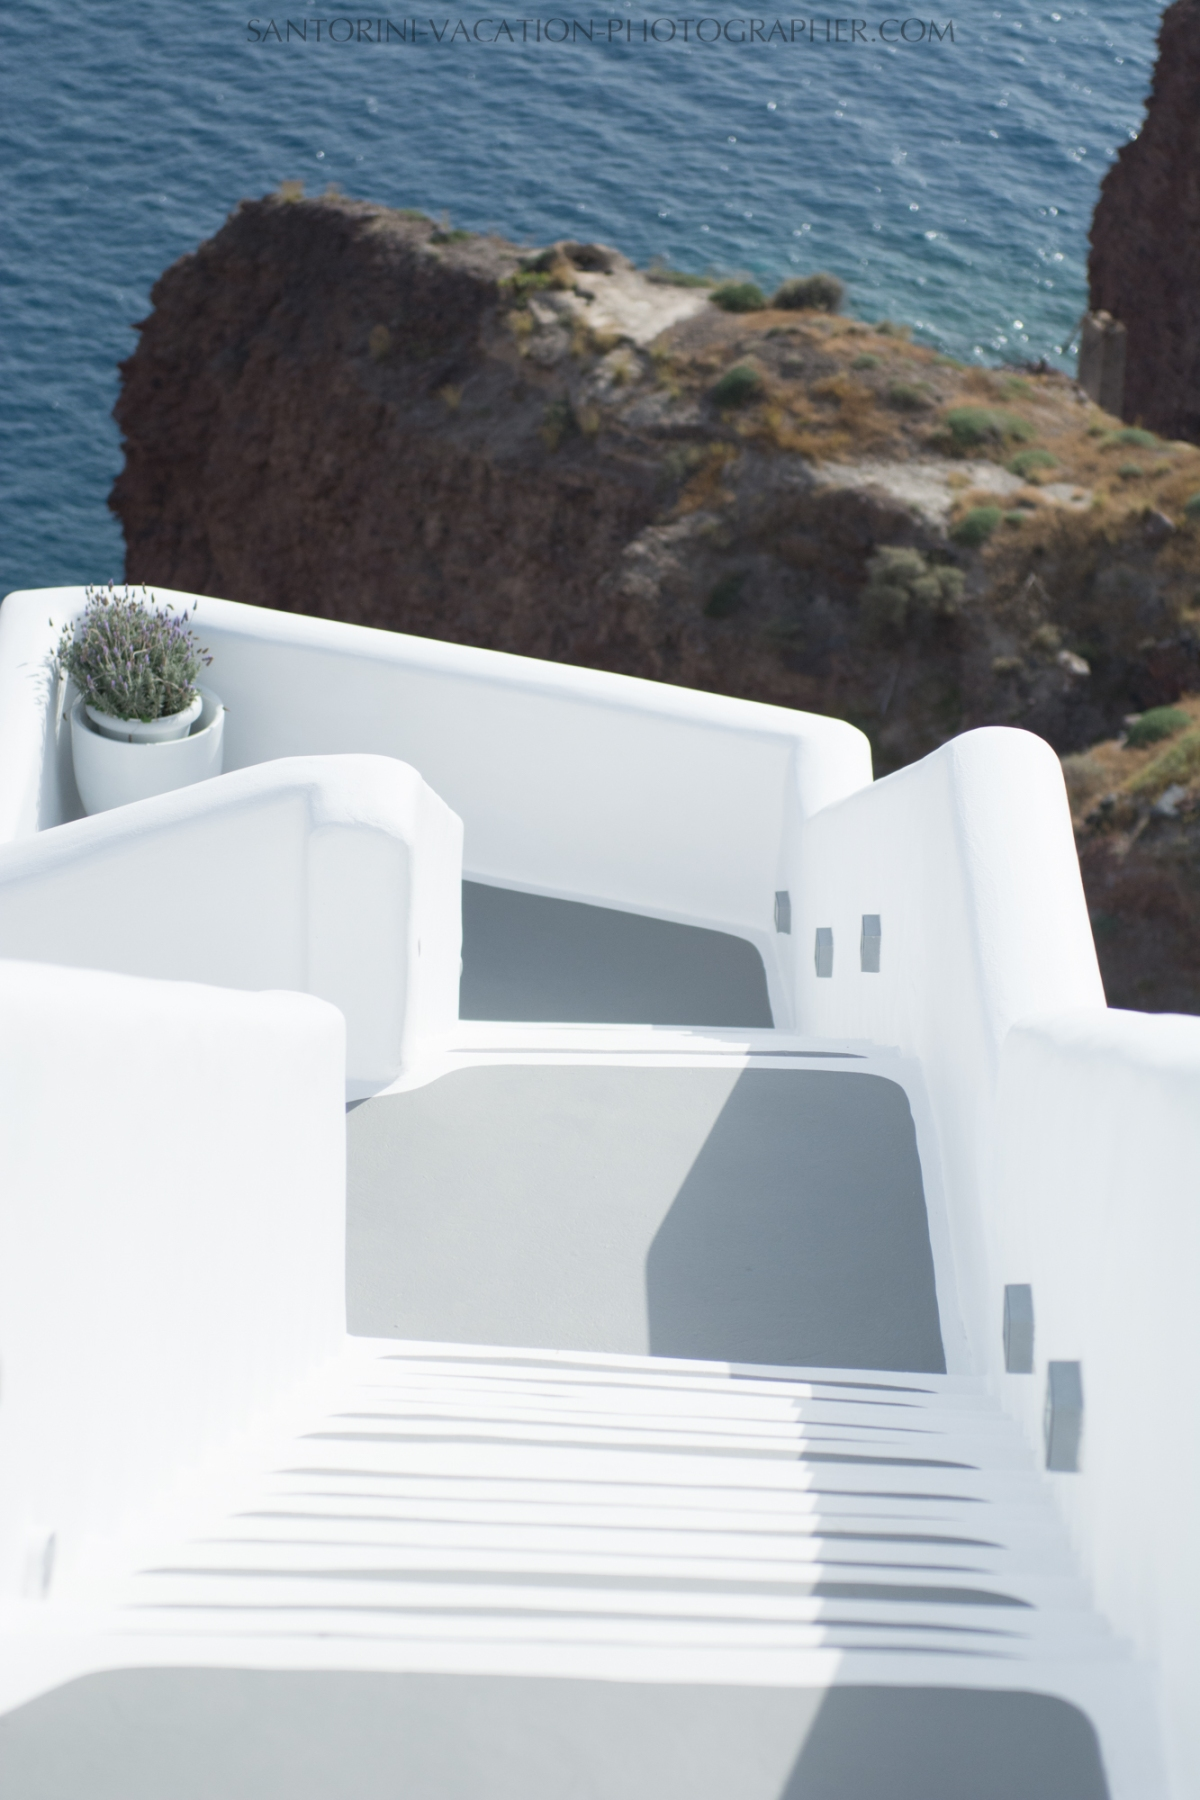 Oia-santorini-village-white-houses-castle-002